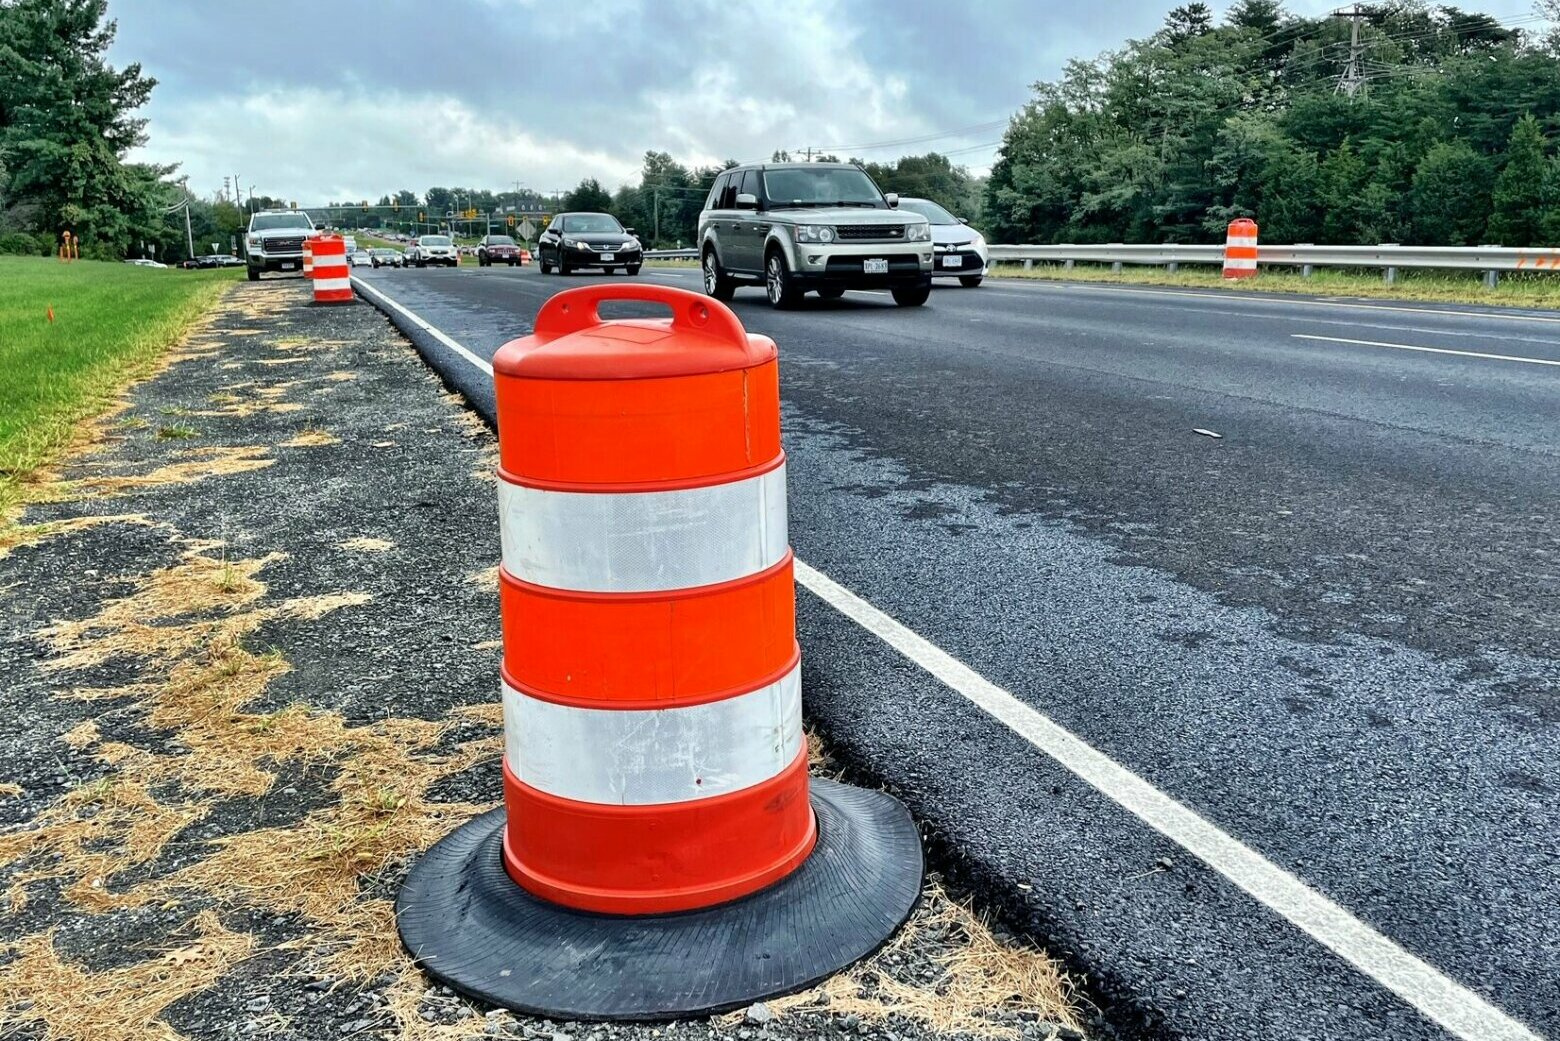 Ground broken on Rt. 28 widening: Va. leaders seek to 'put all the pieces together'